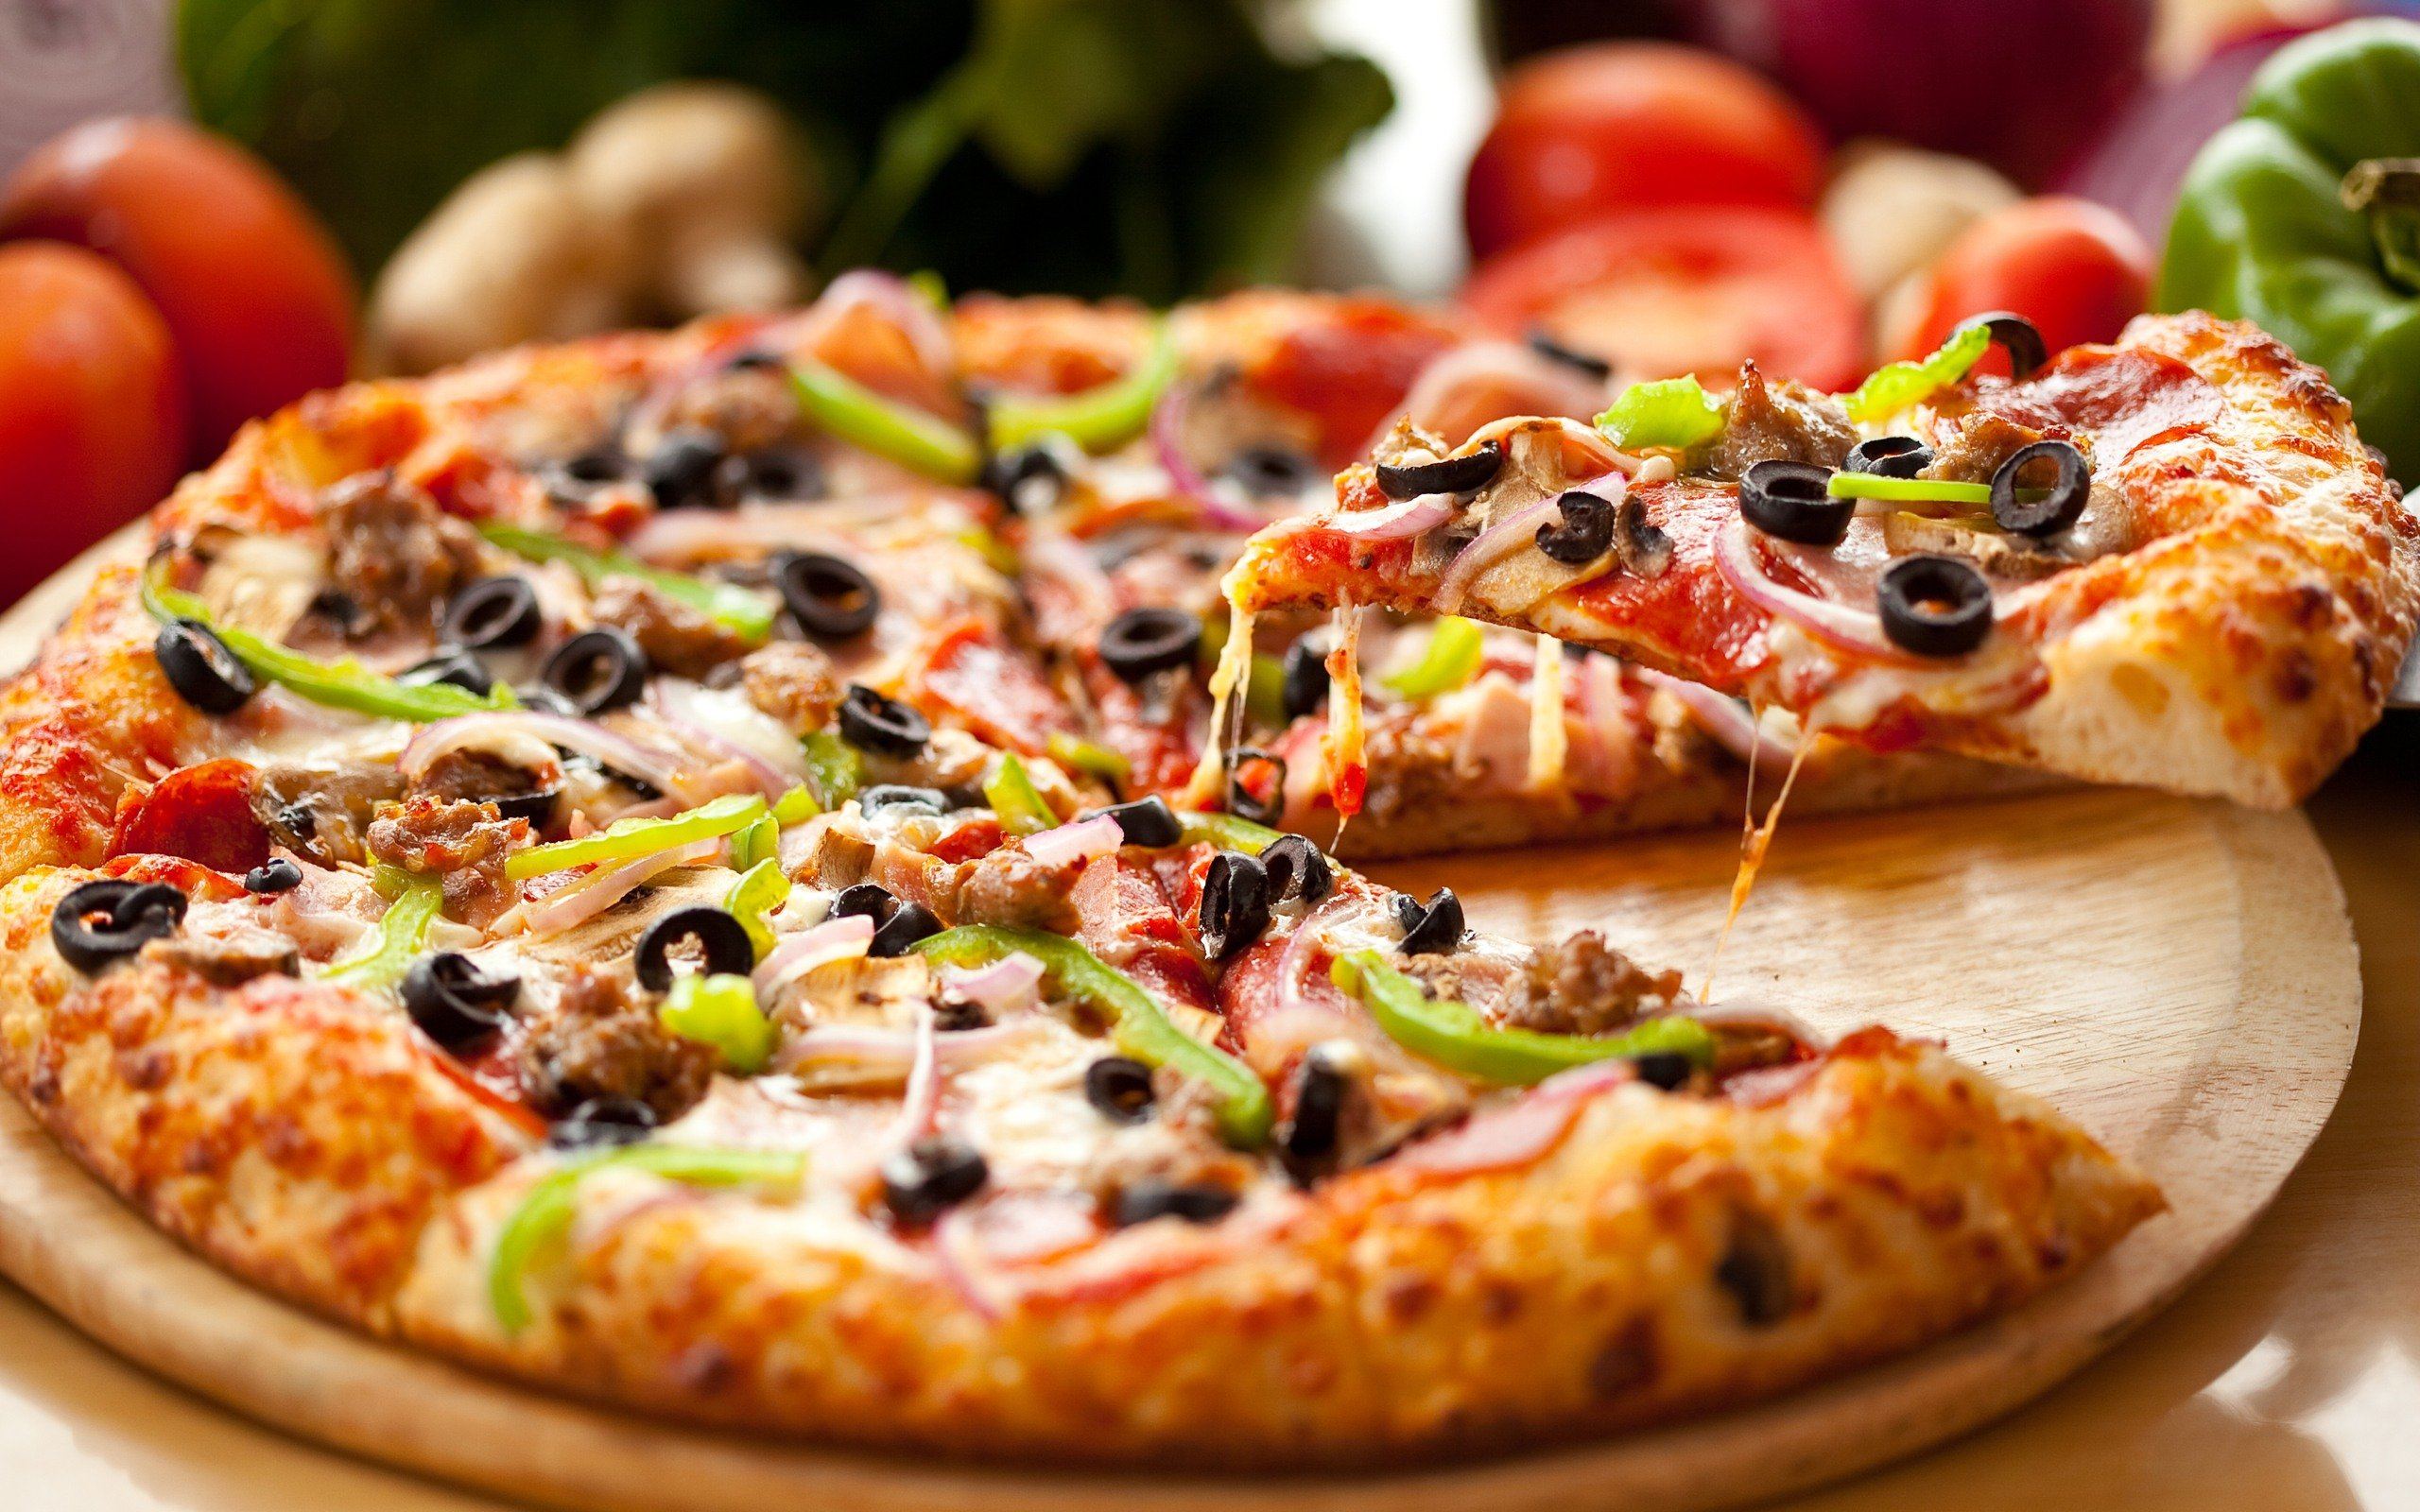 'Four hours to walk off pizza calories' warning works